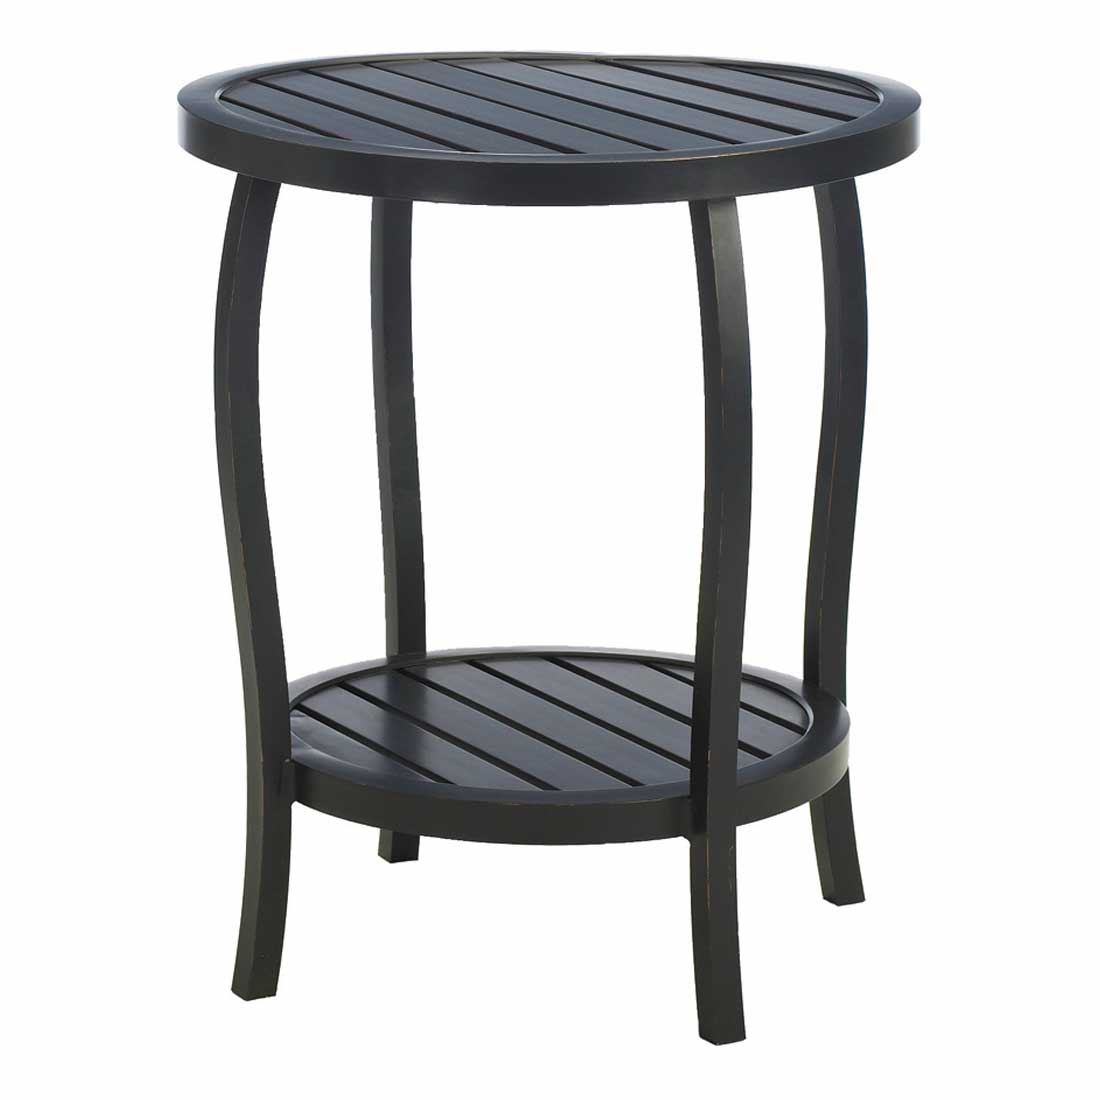 cottage metal outdoor end tables mosaic accent table world market furniture legs modern toronto dresser with mirror hand painted kitchens antique round occasional little target